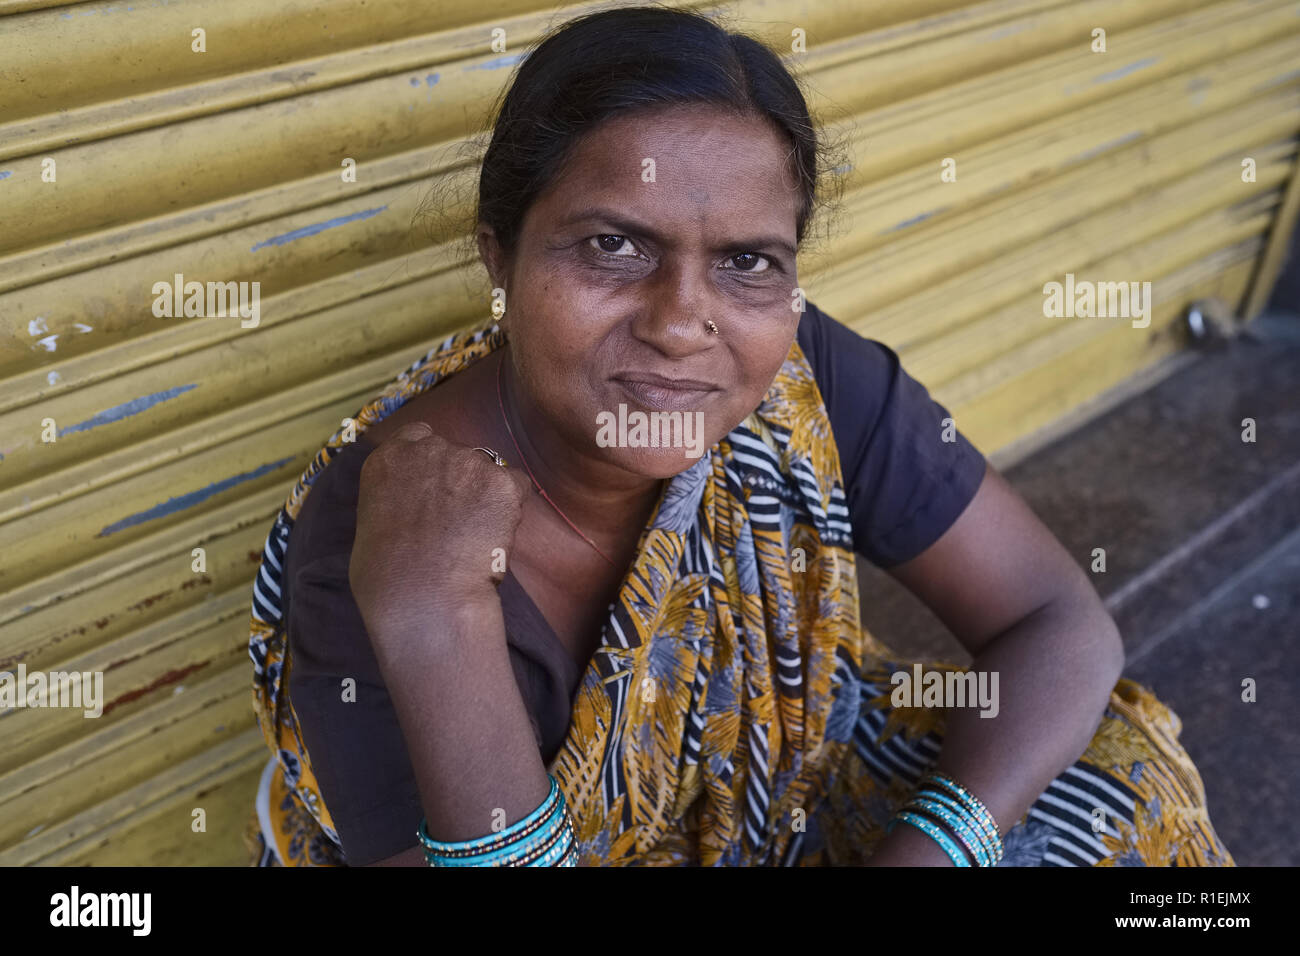 An Indian hijra, i.e. transvestite, transsexual or eunuch, taking a rest from begging near Mumbadevi Temple in Mumbai, India Stock Photo